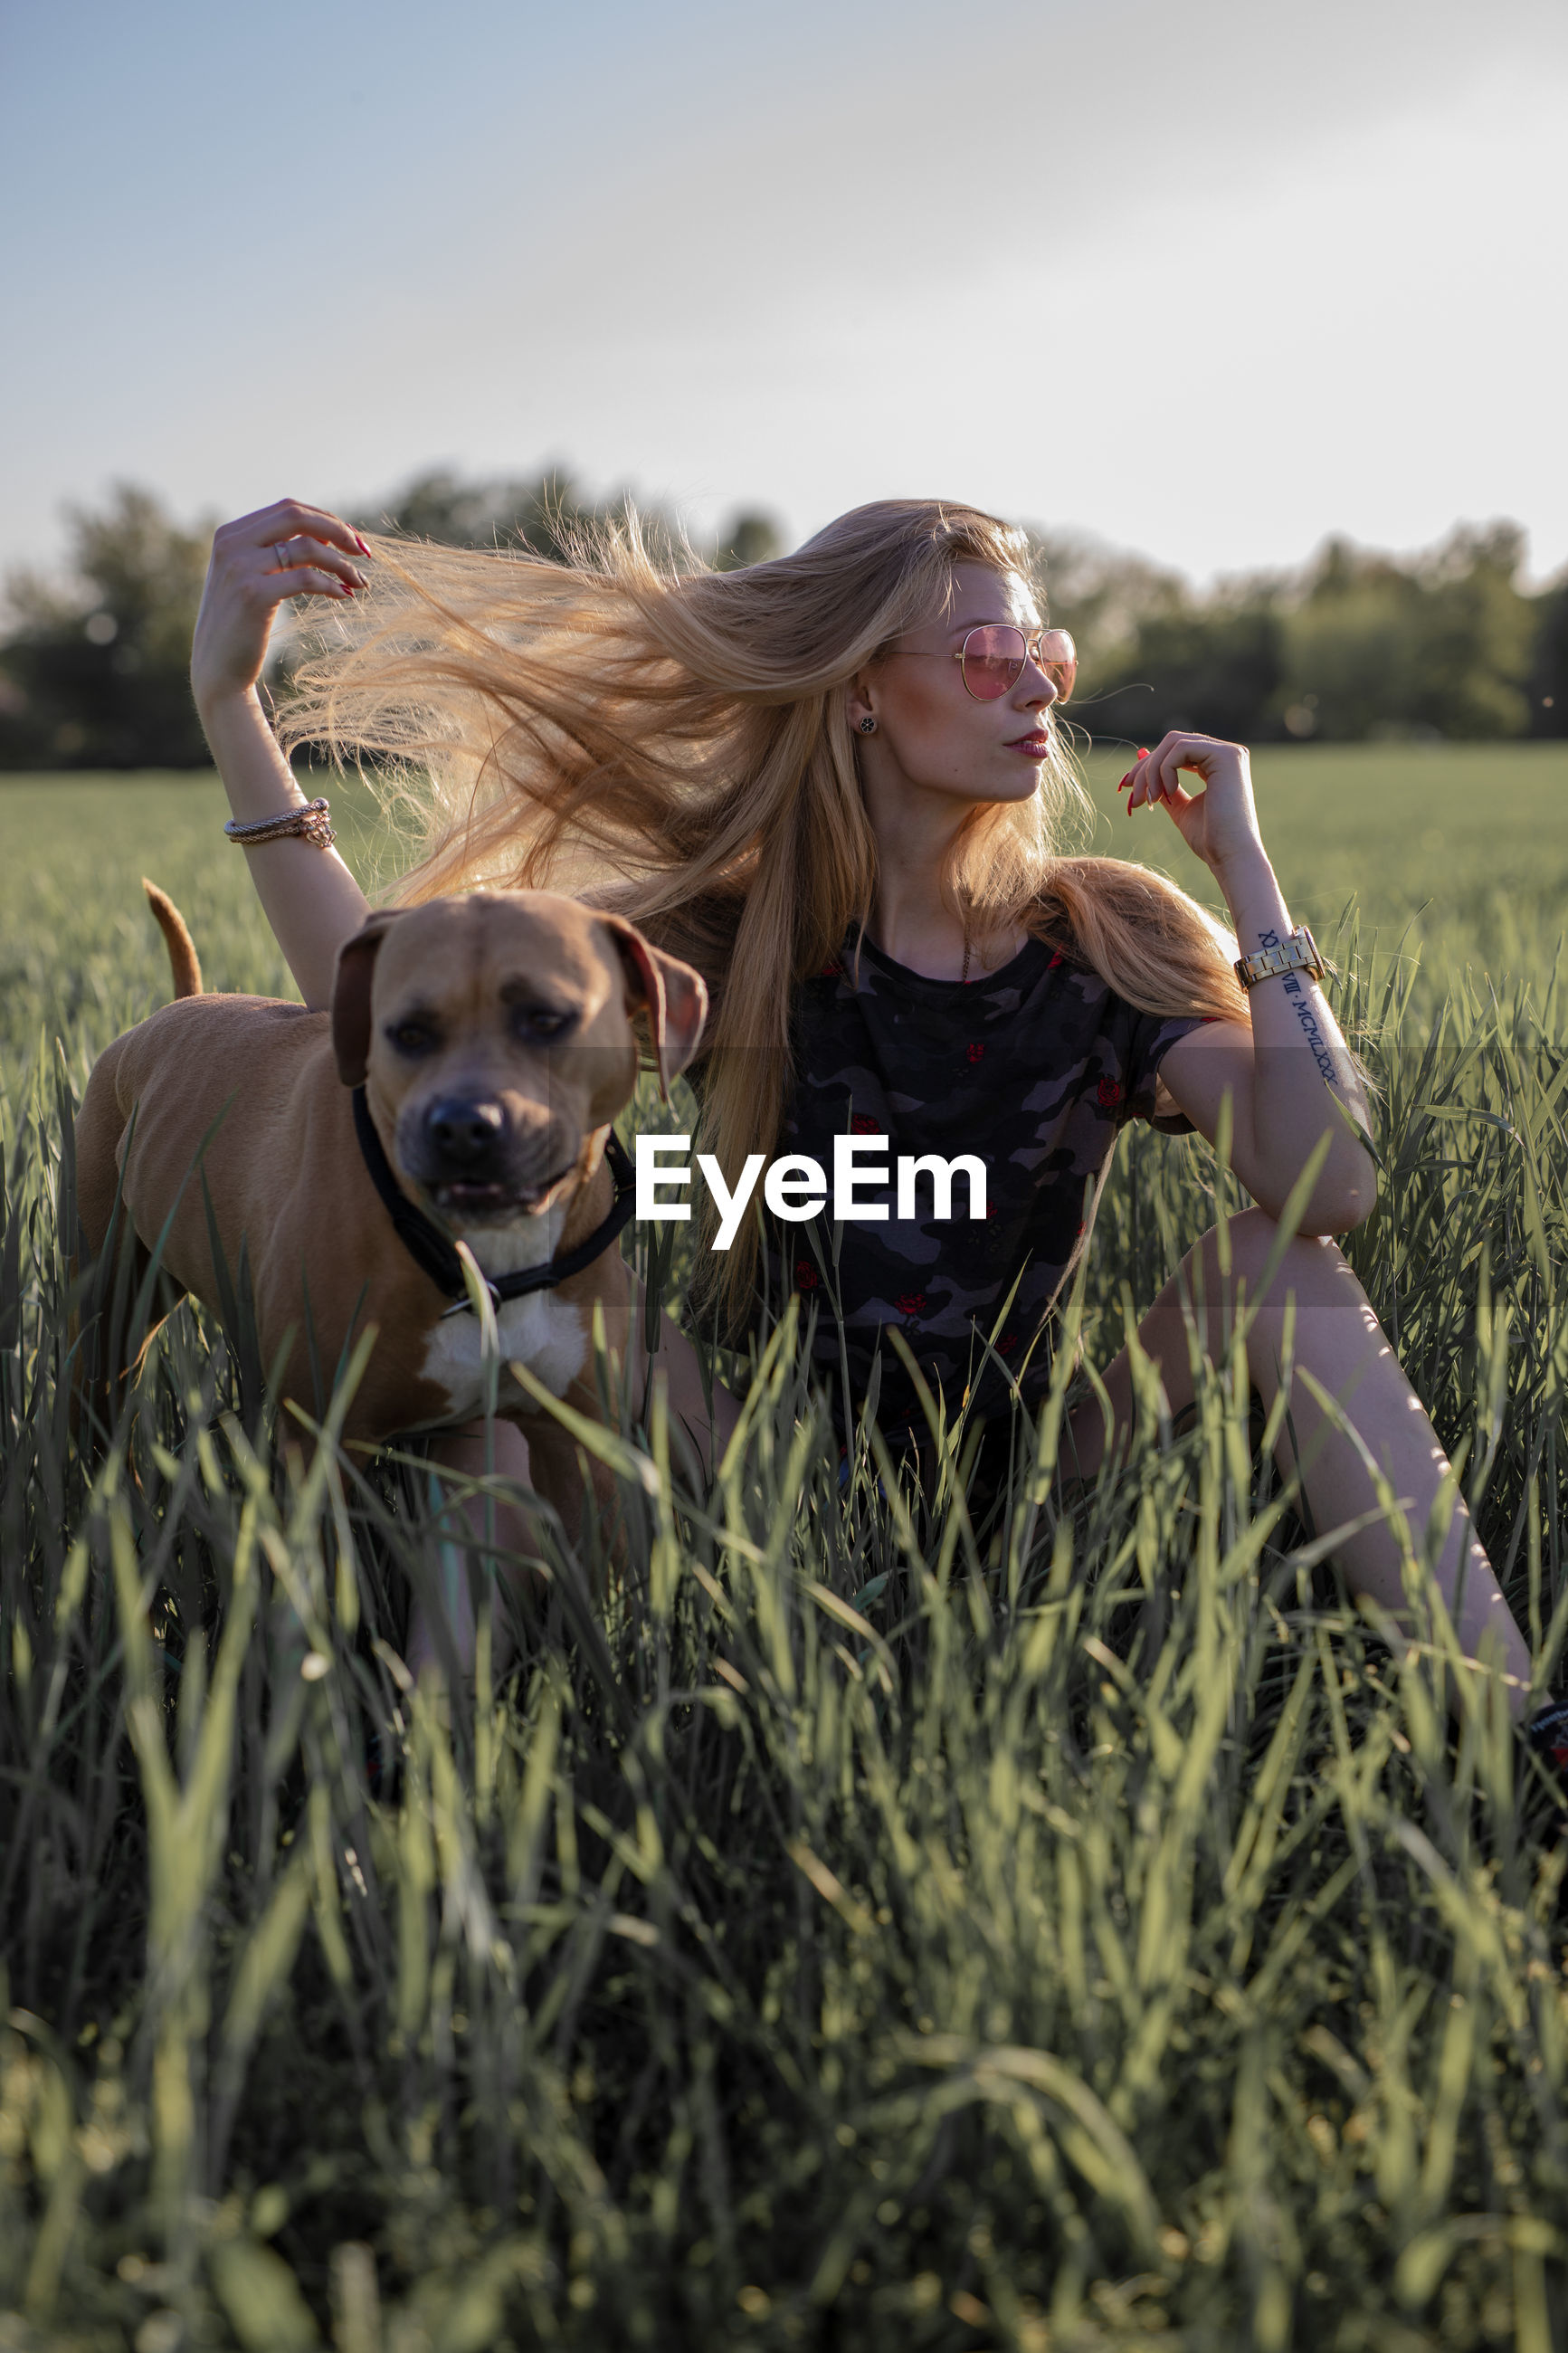 Woman with dog on field against sky